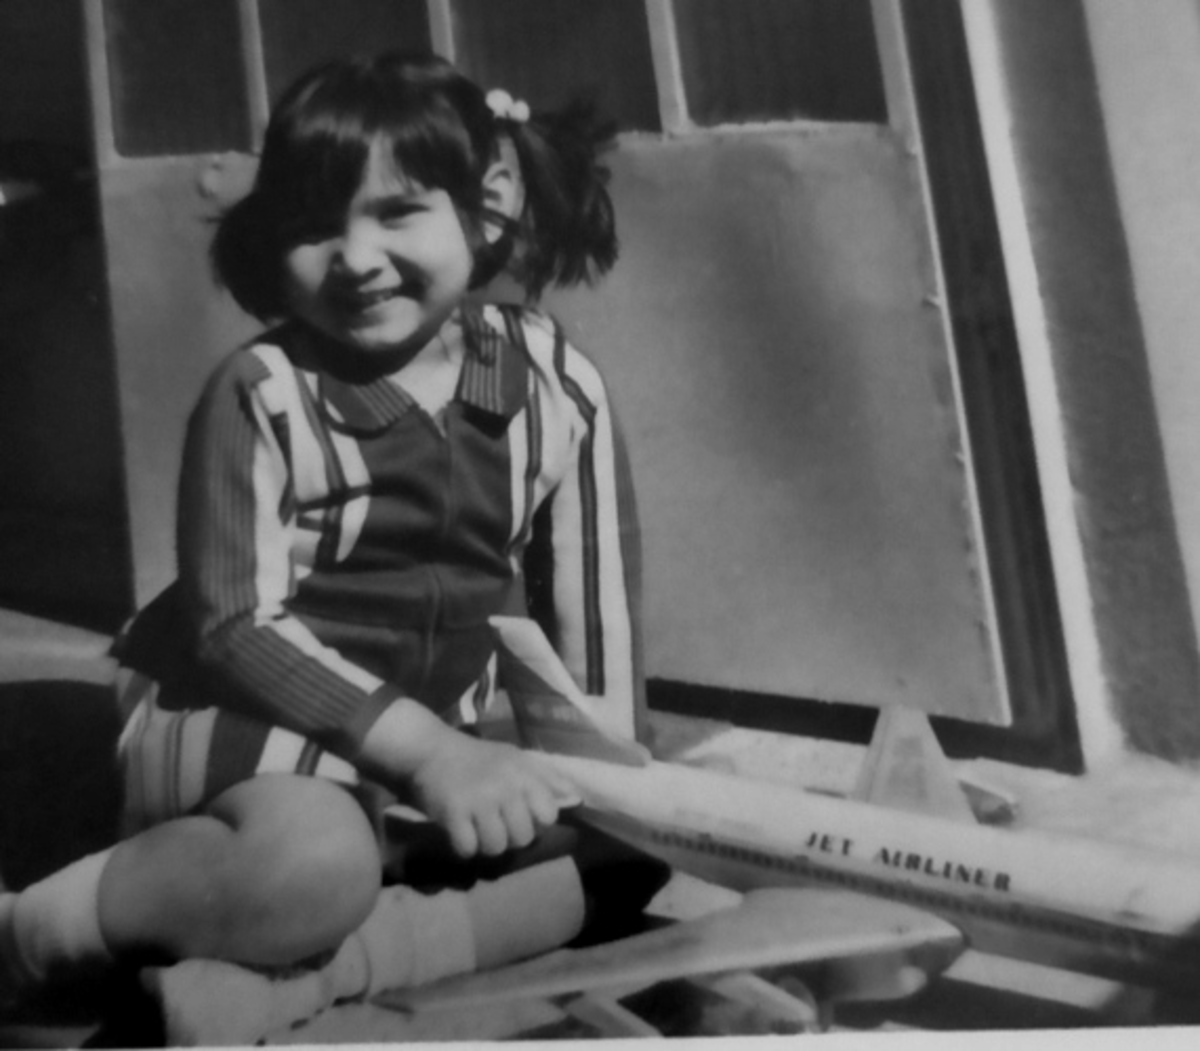 Pic9: Myself Posing with My Toy Airplane